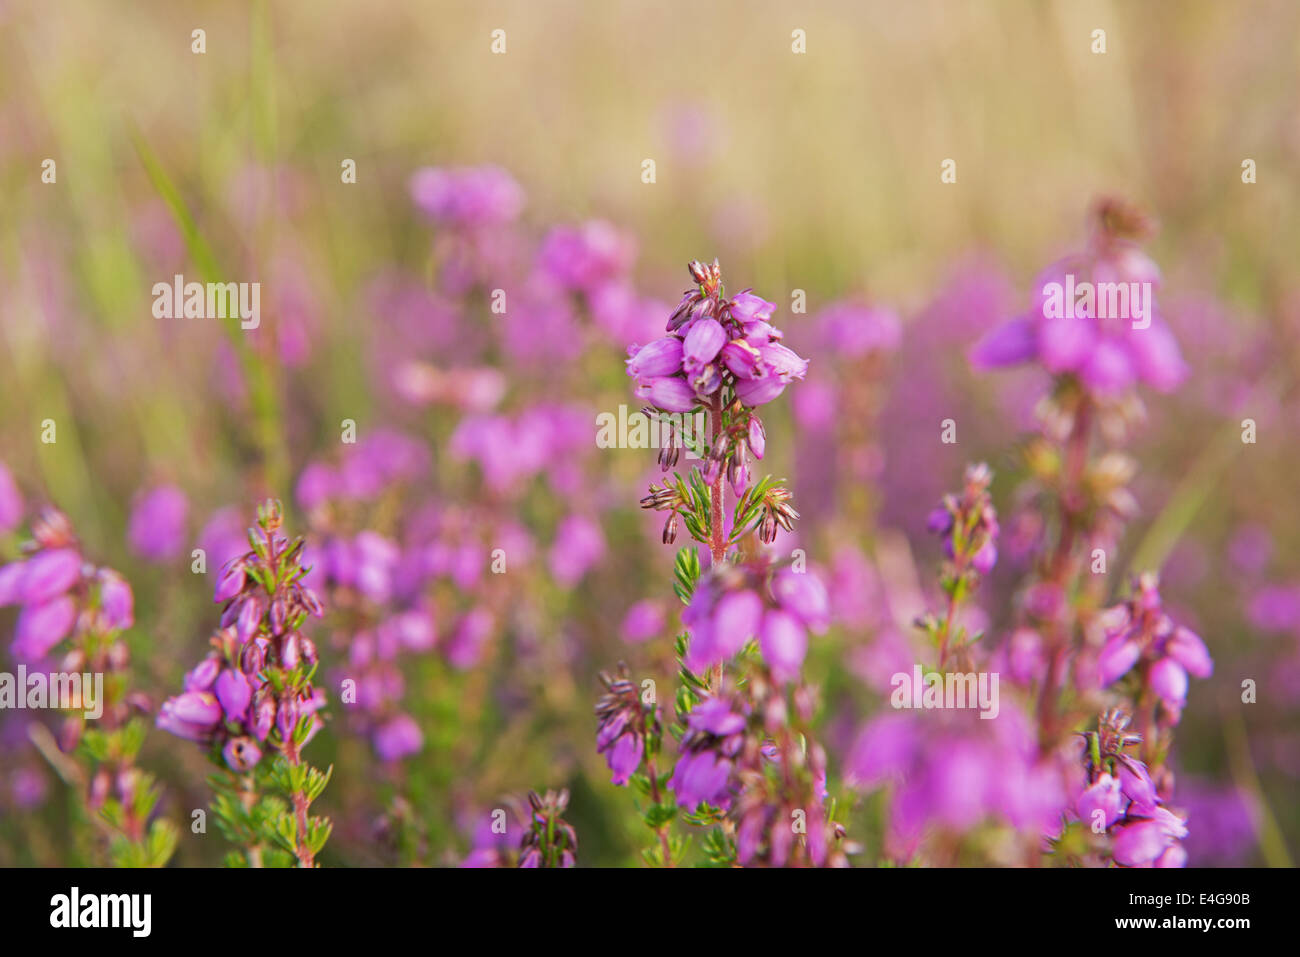 Culluna Vulgaris  ( Known As Common Heather, Ling Or Simply Heather) In Bloom, Summer, Uk. - Stock Image